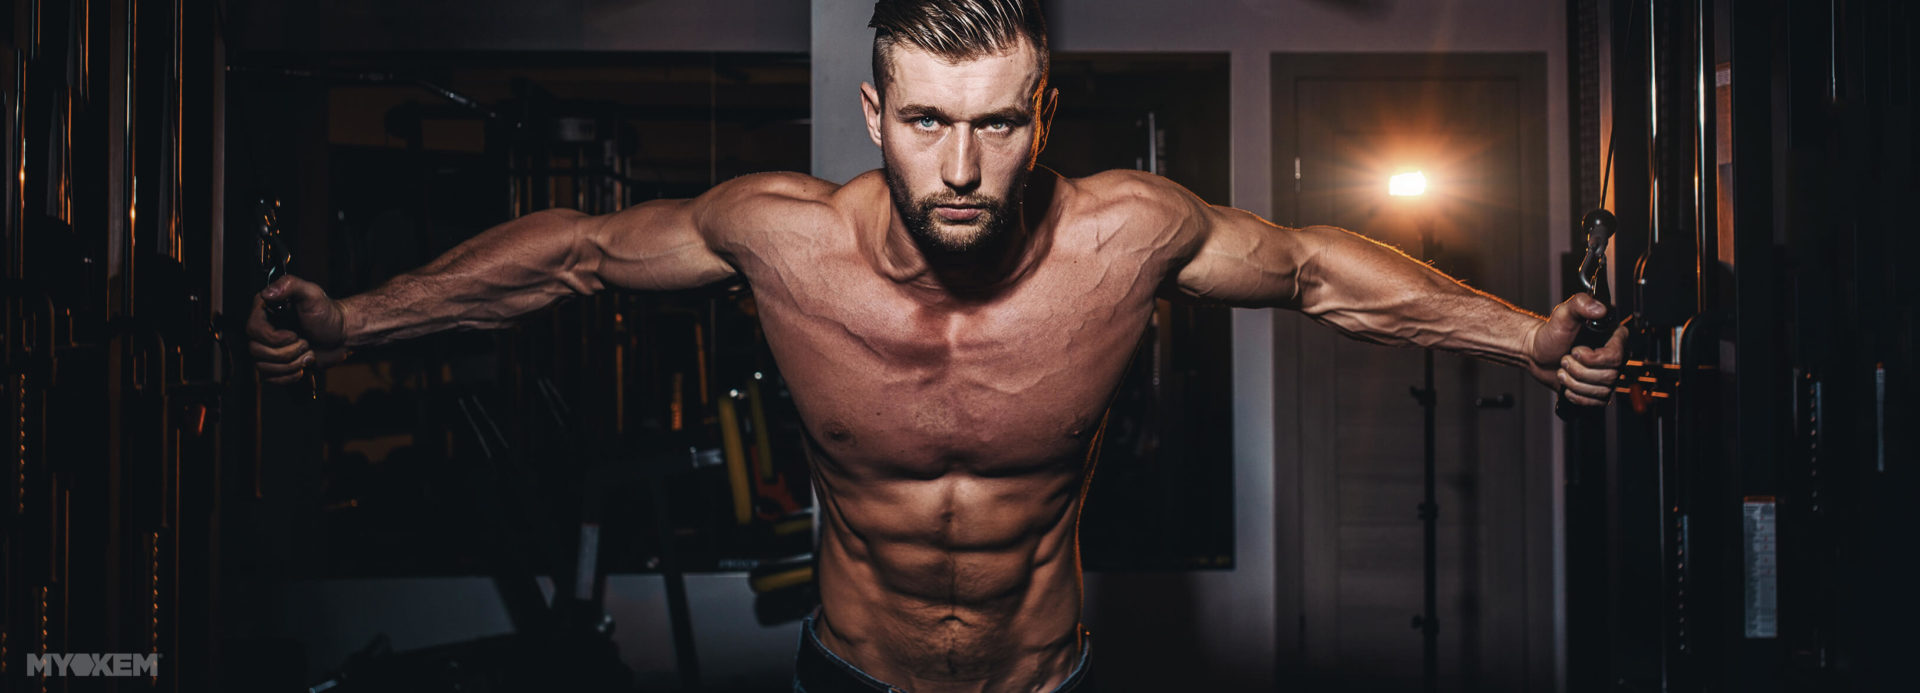 Model that takes Alphadex to keep muscles defined